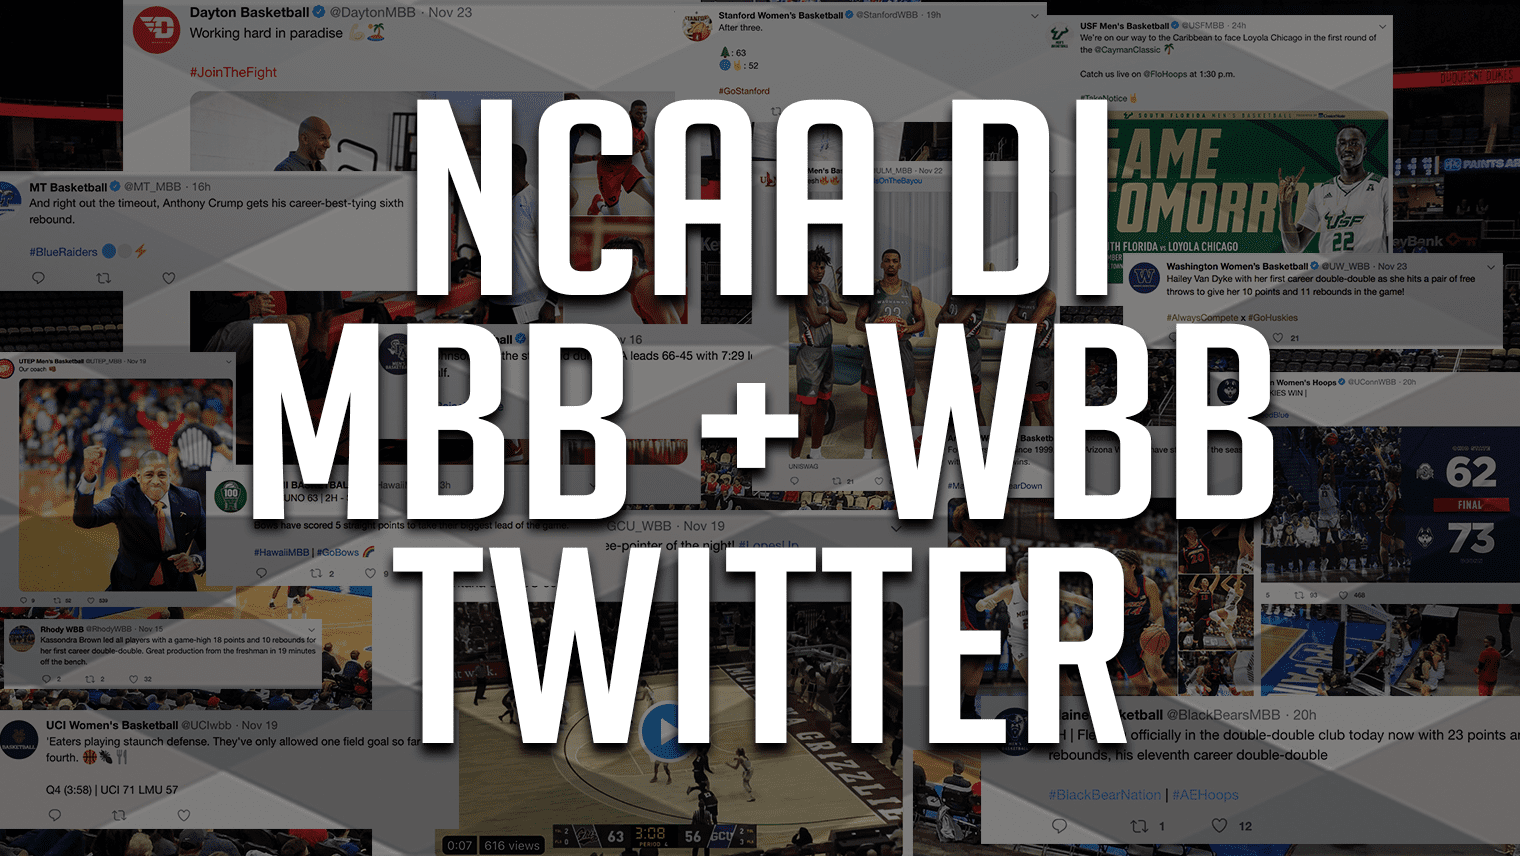 All NCAA Division I Basketball Twitter Accounts - MBB & WBB